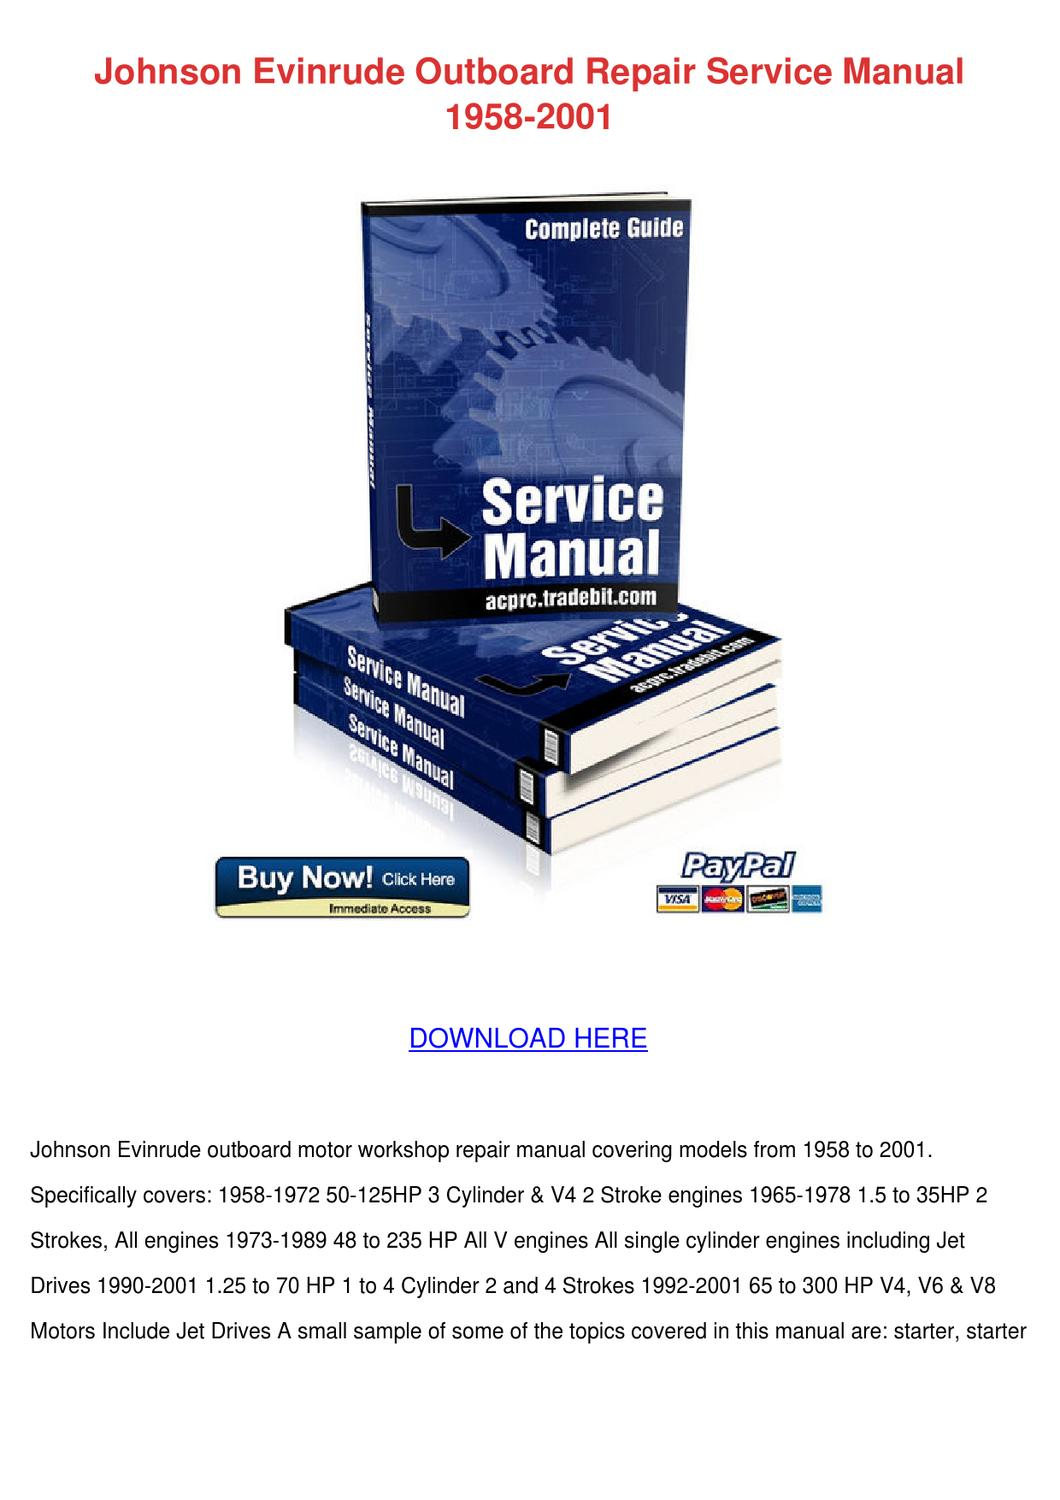 Johnson Evinrude Outboard Repair Service Manu by Sherika Blanchfield - issuu